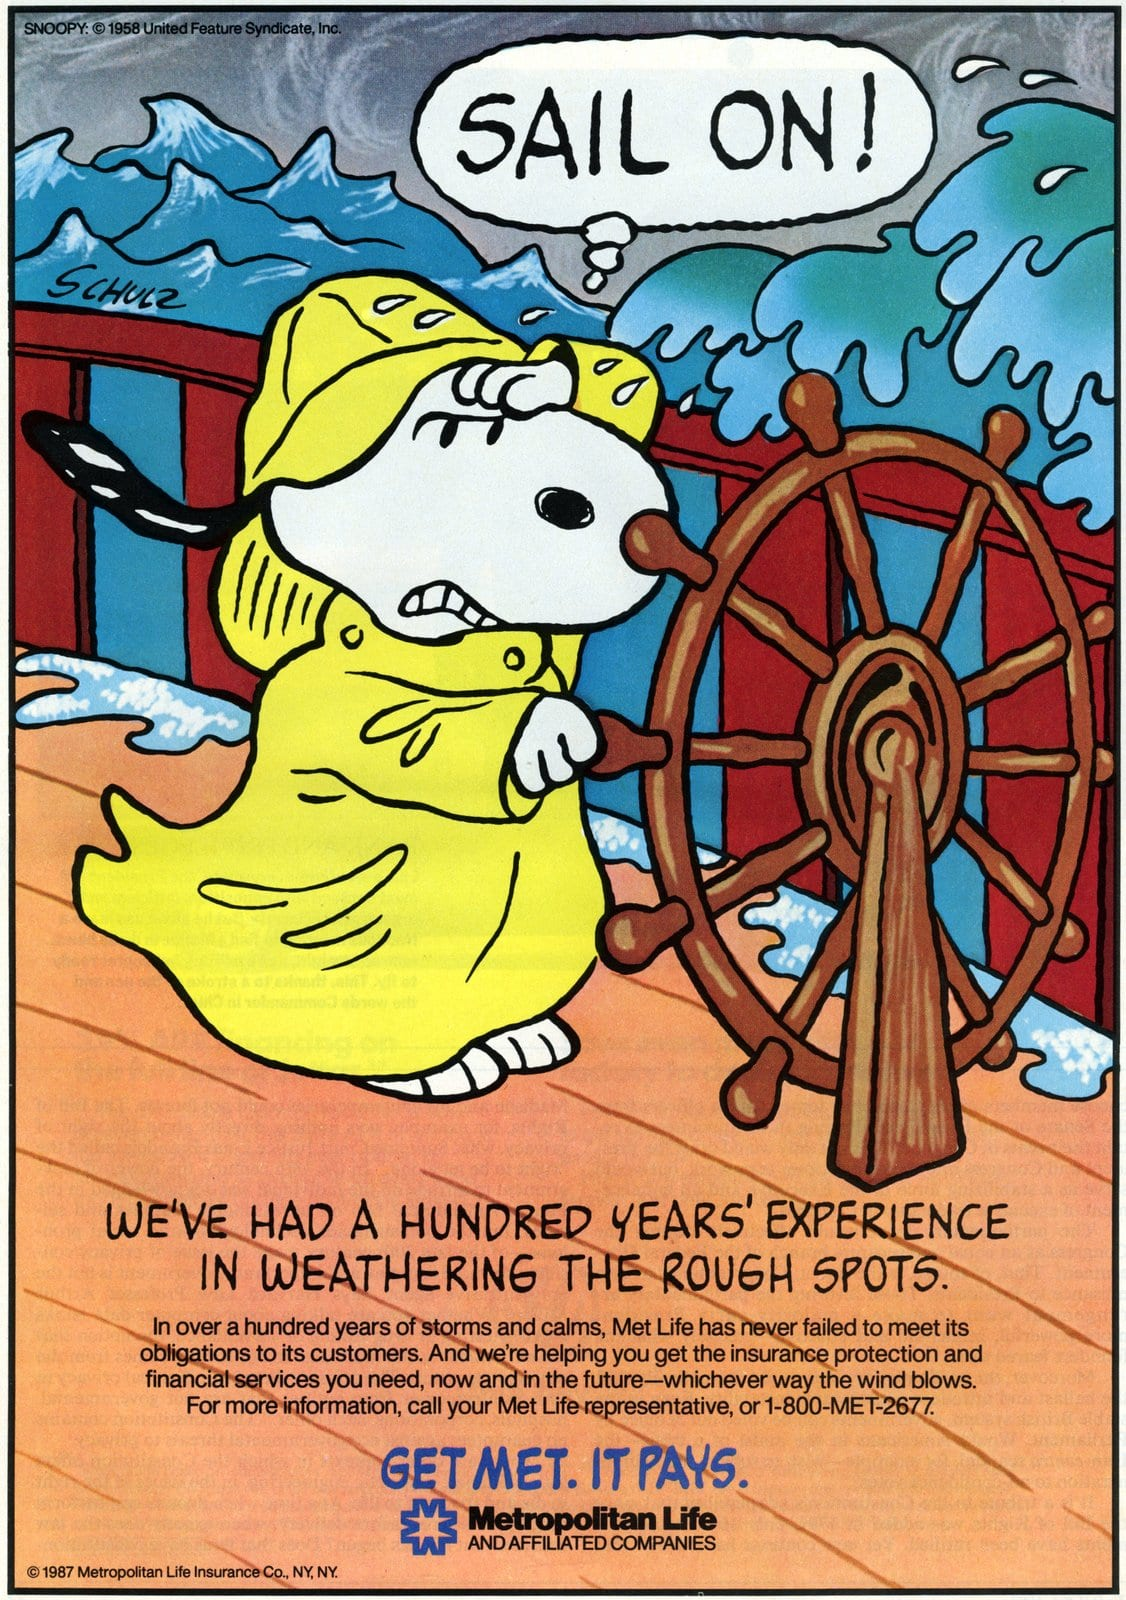 Snoopy on a ship - Peanuts for Met Life (1987)